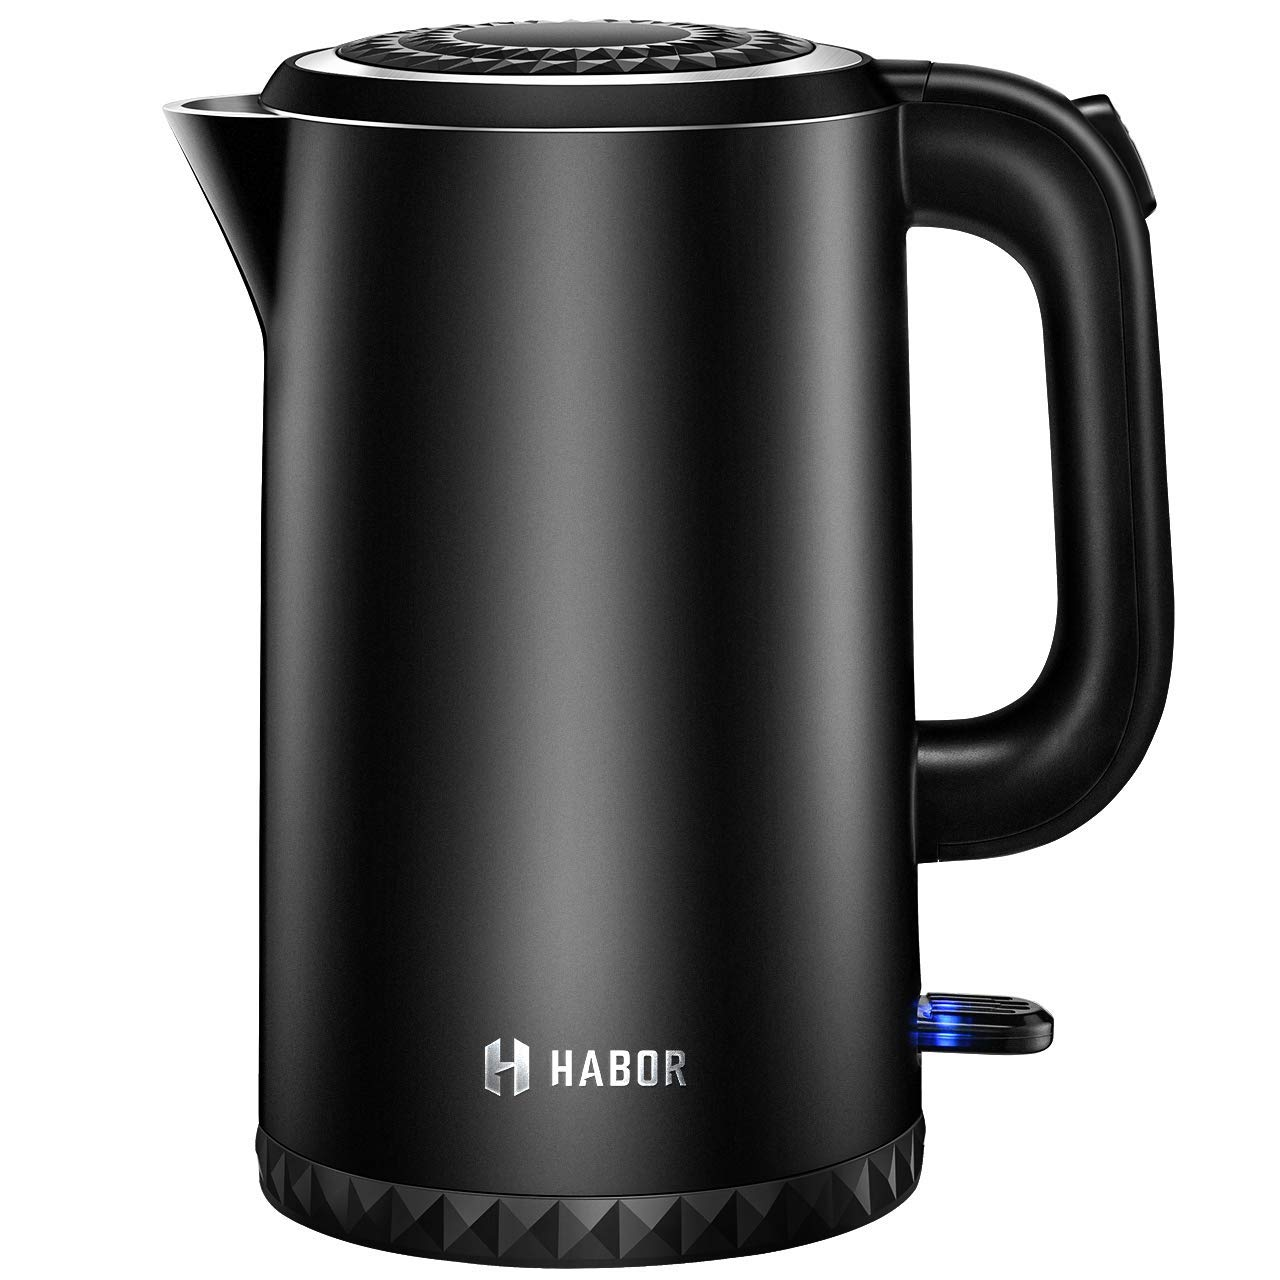 Habor Electric Kettle, 100% Stainless Steel Hot Water Water Boiler, 1500W 1.7L Fast Boiling Tea Water Heater, Auto Shut-Off Protection